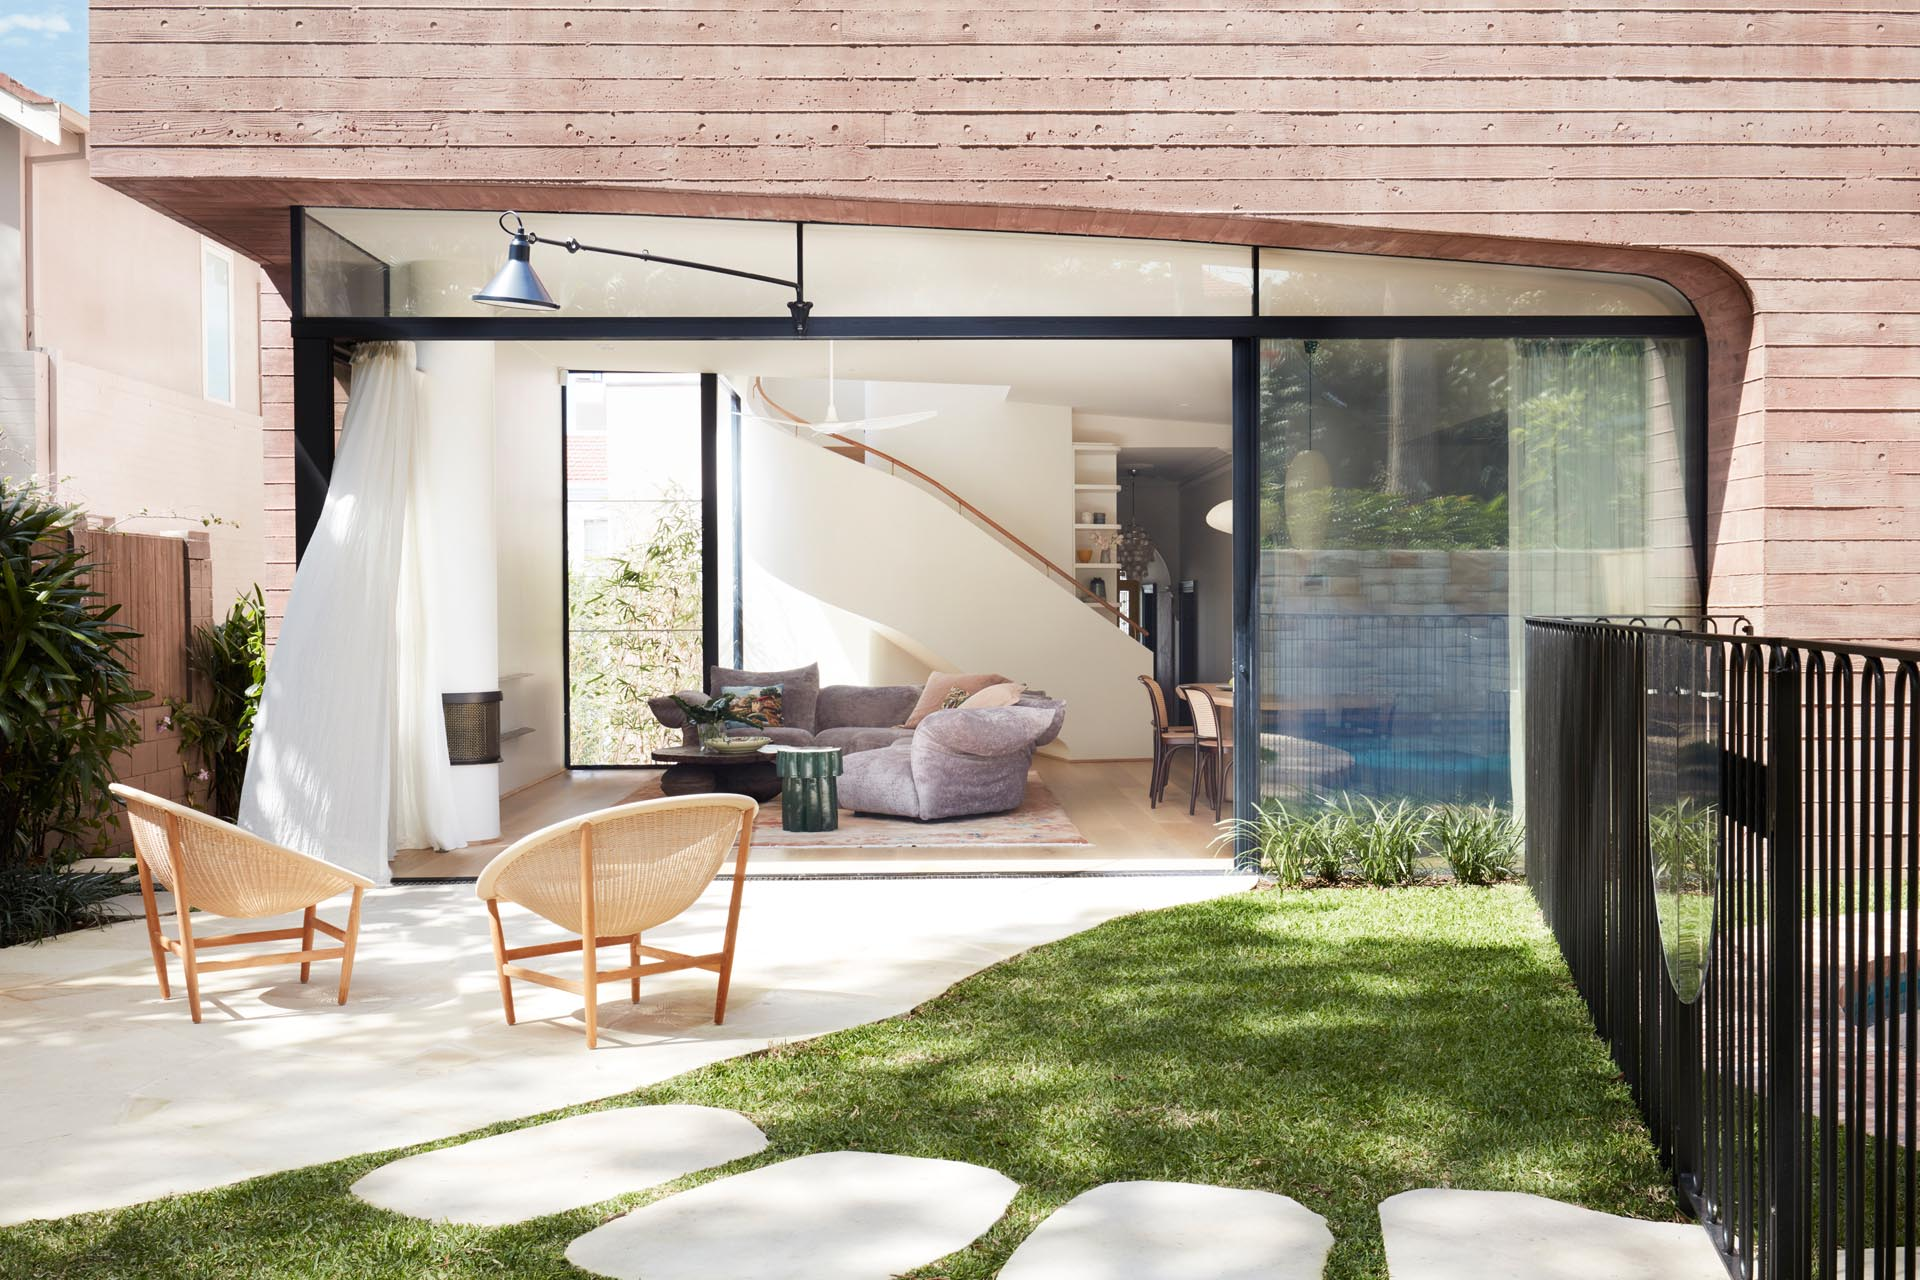 This simple patio is connected to the interior spaces by a large sliding glass door.